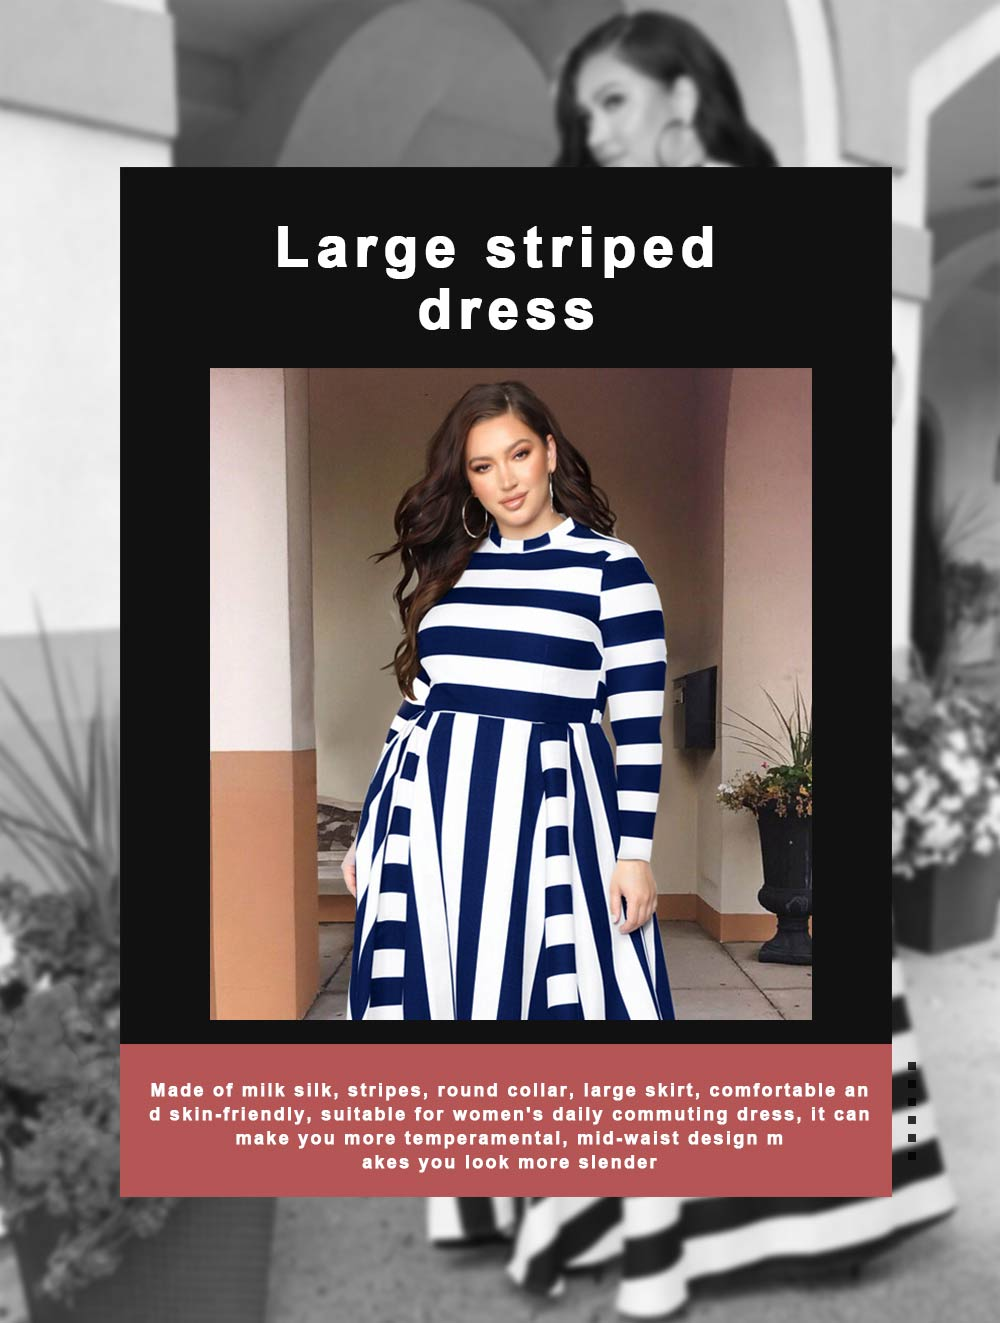 Large Size Striped Dress New Women's Loose Long-sleeved Long-necked Long-Size Dresses 2019 Hot 0